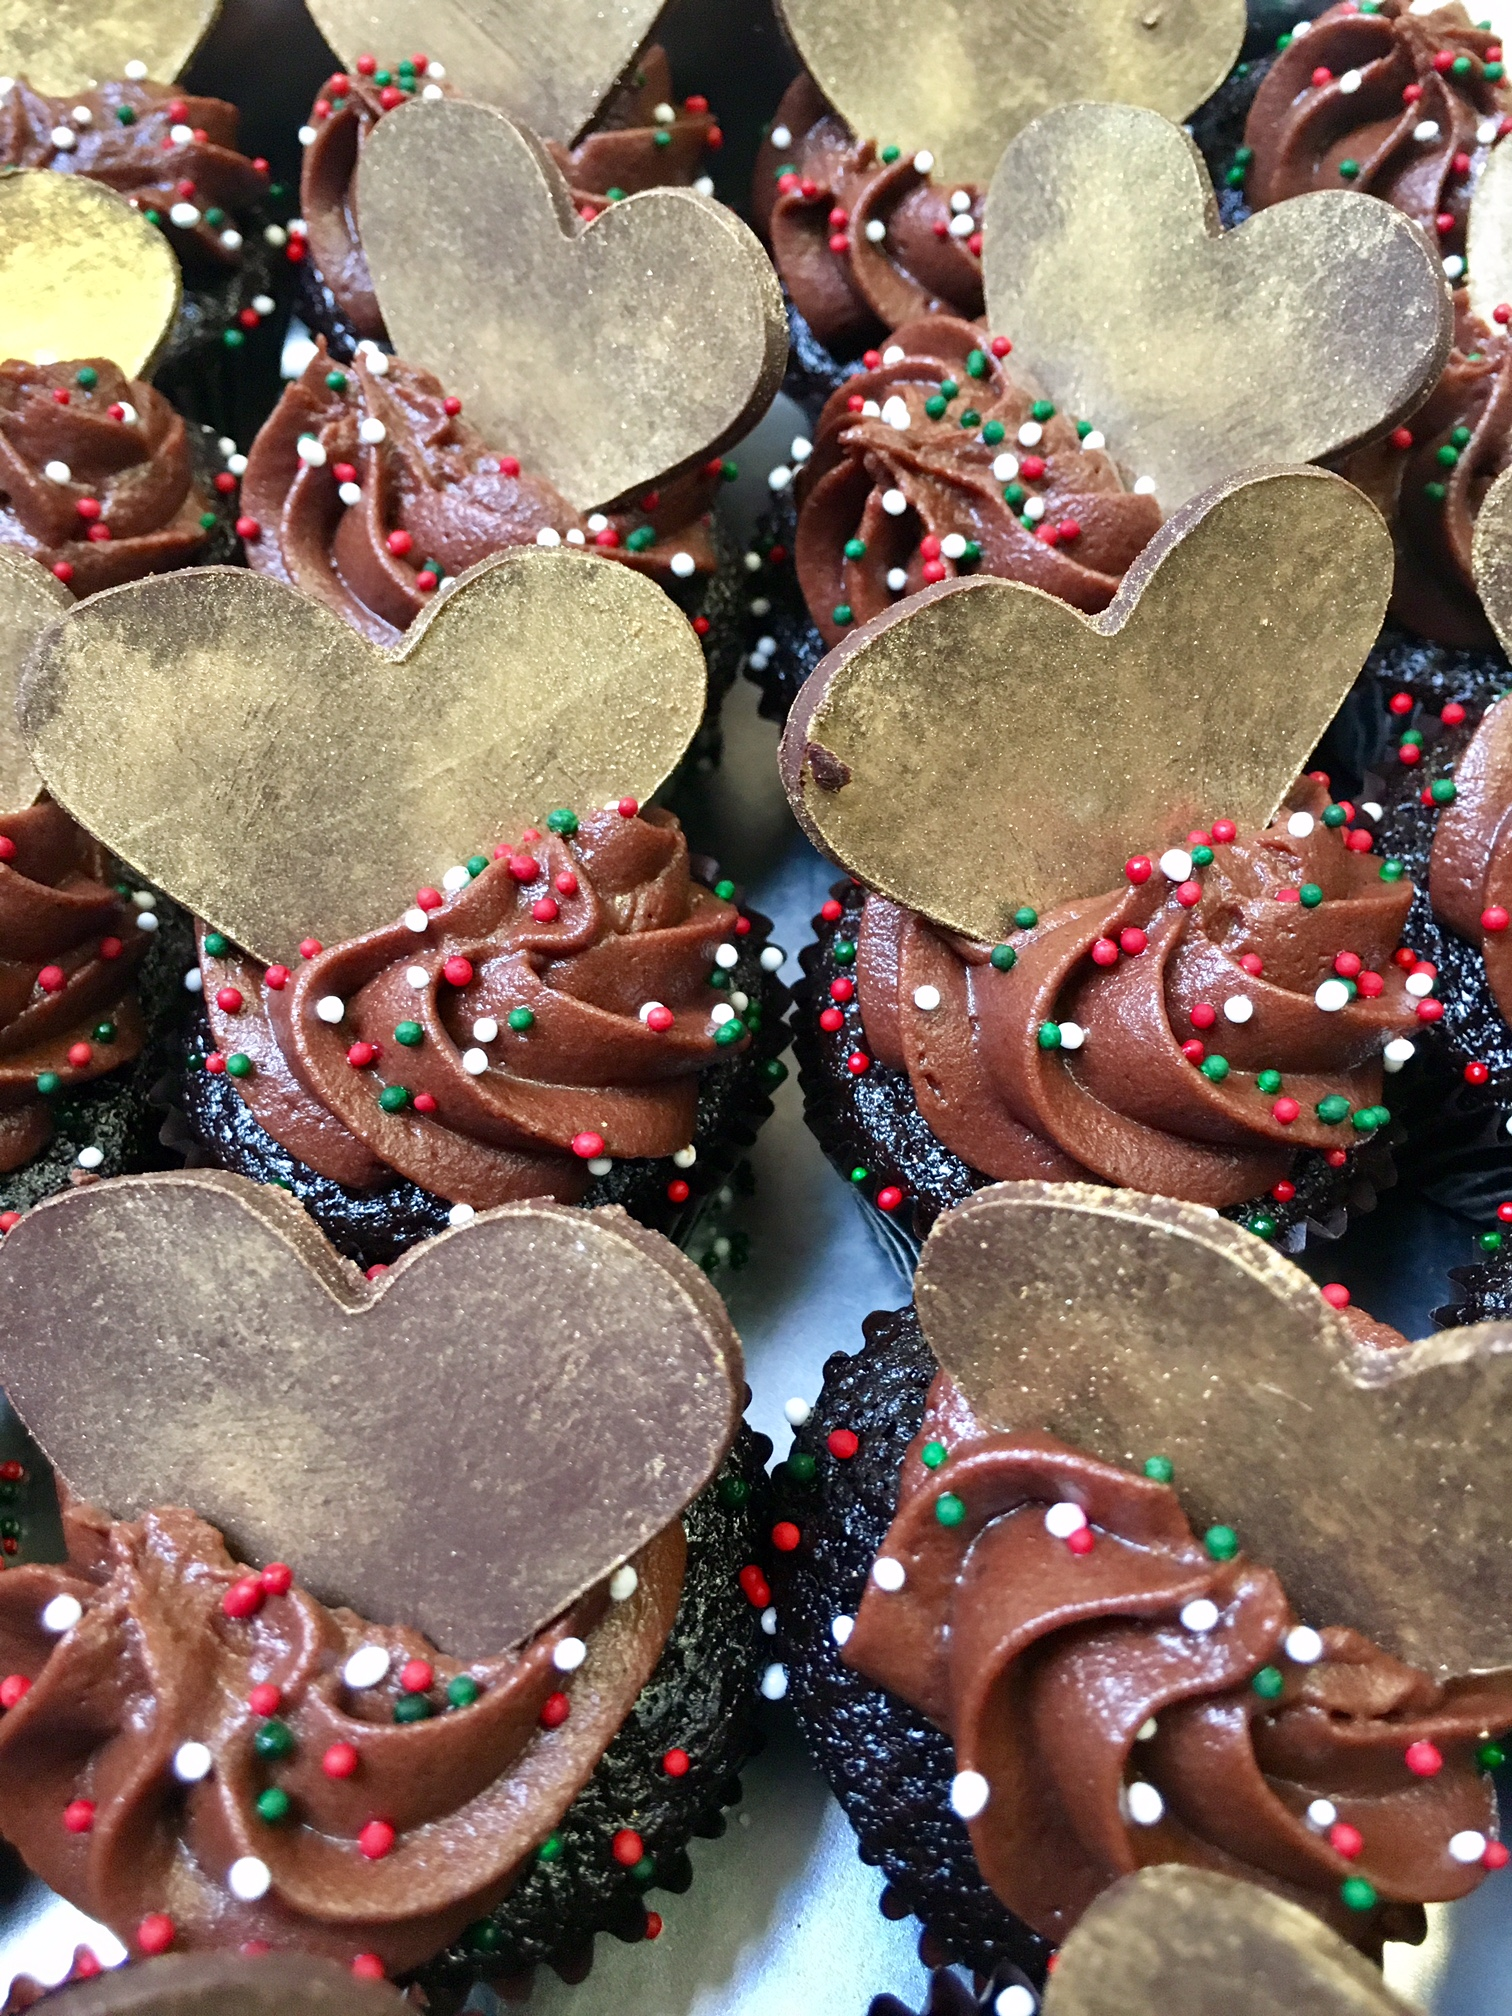 Chocolate Cupcakes topped off with Chocolate Frosting